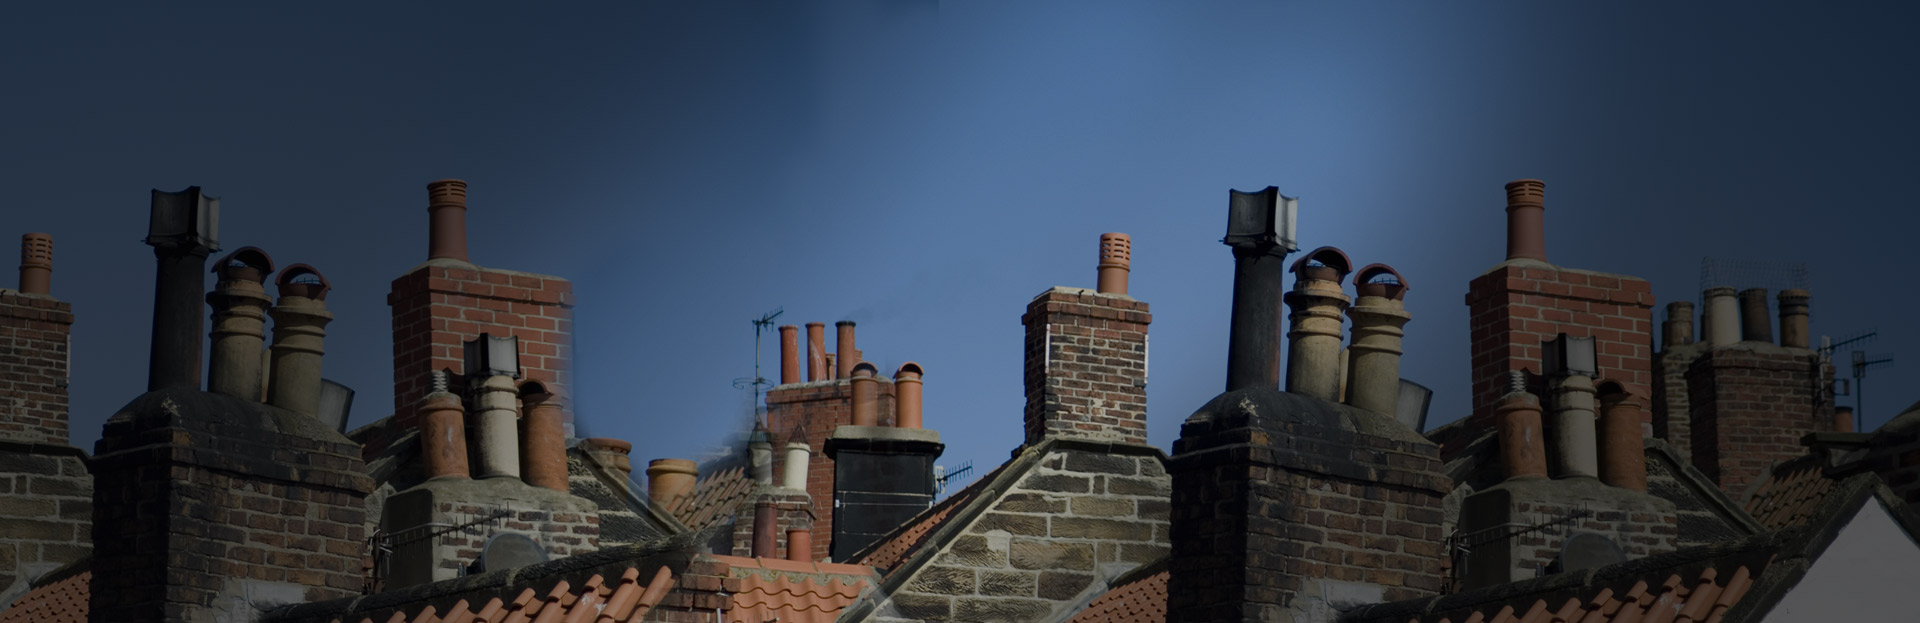 Qualified chimney sweep